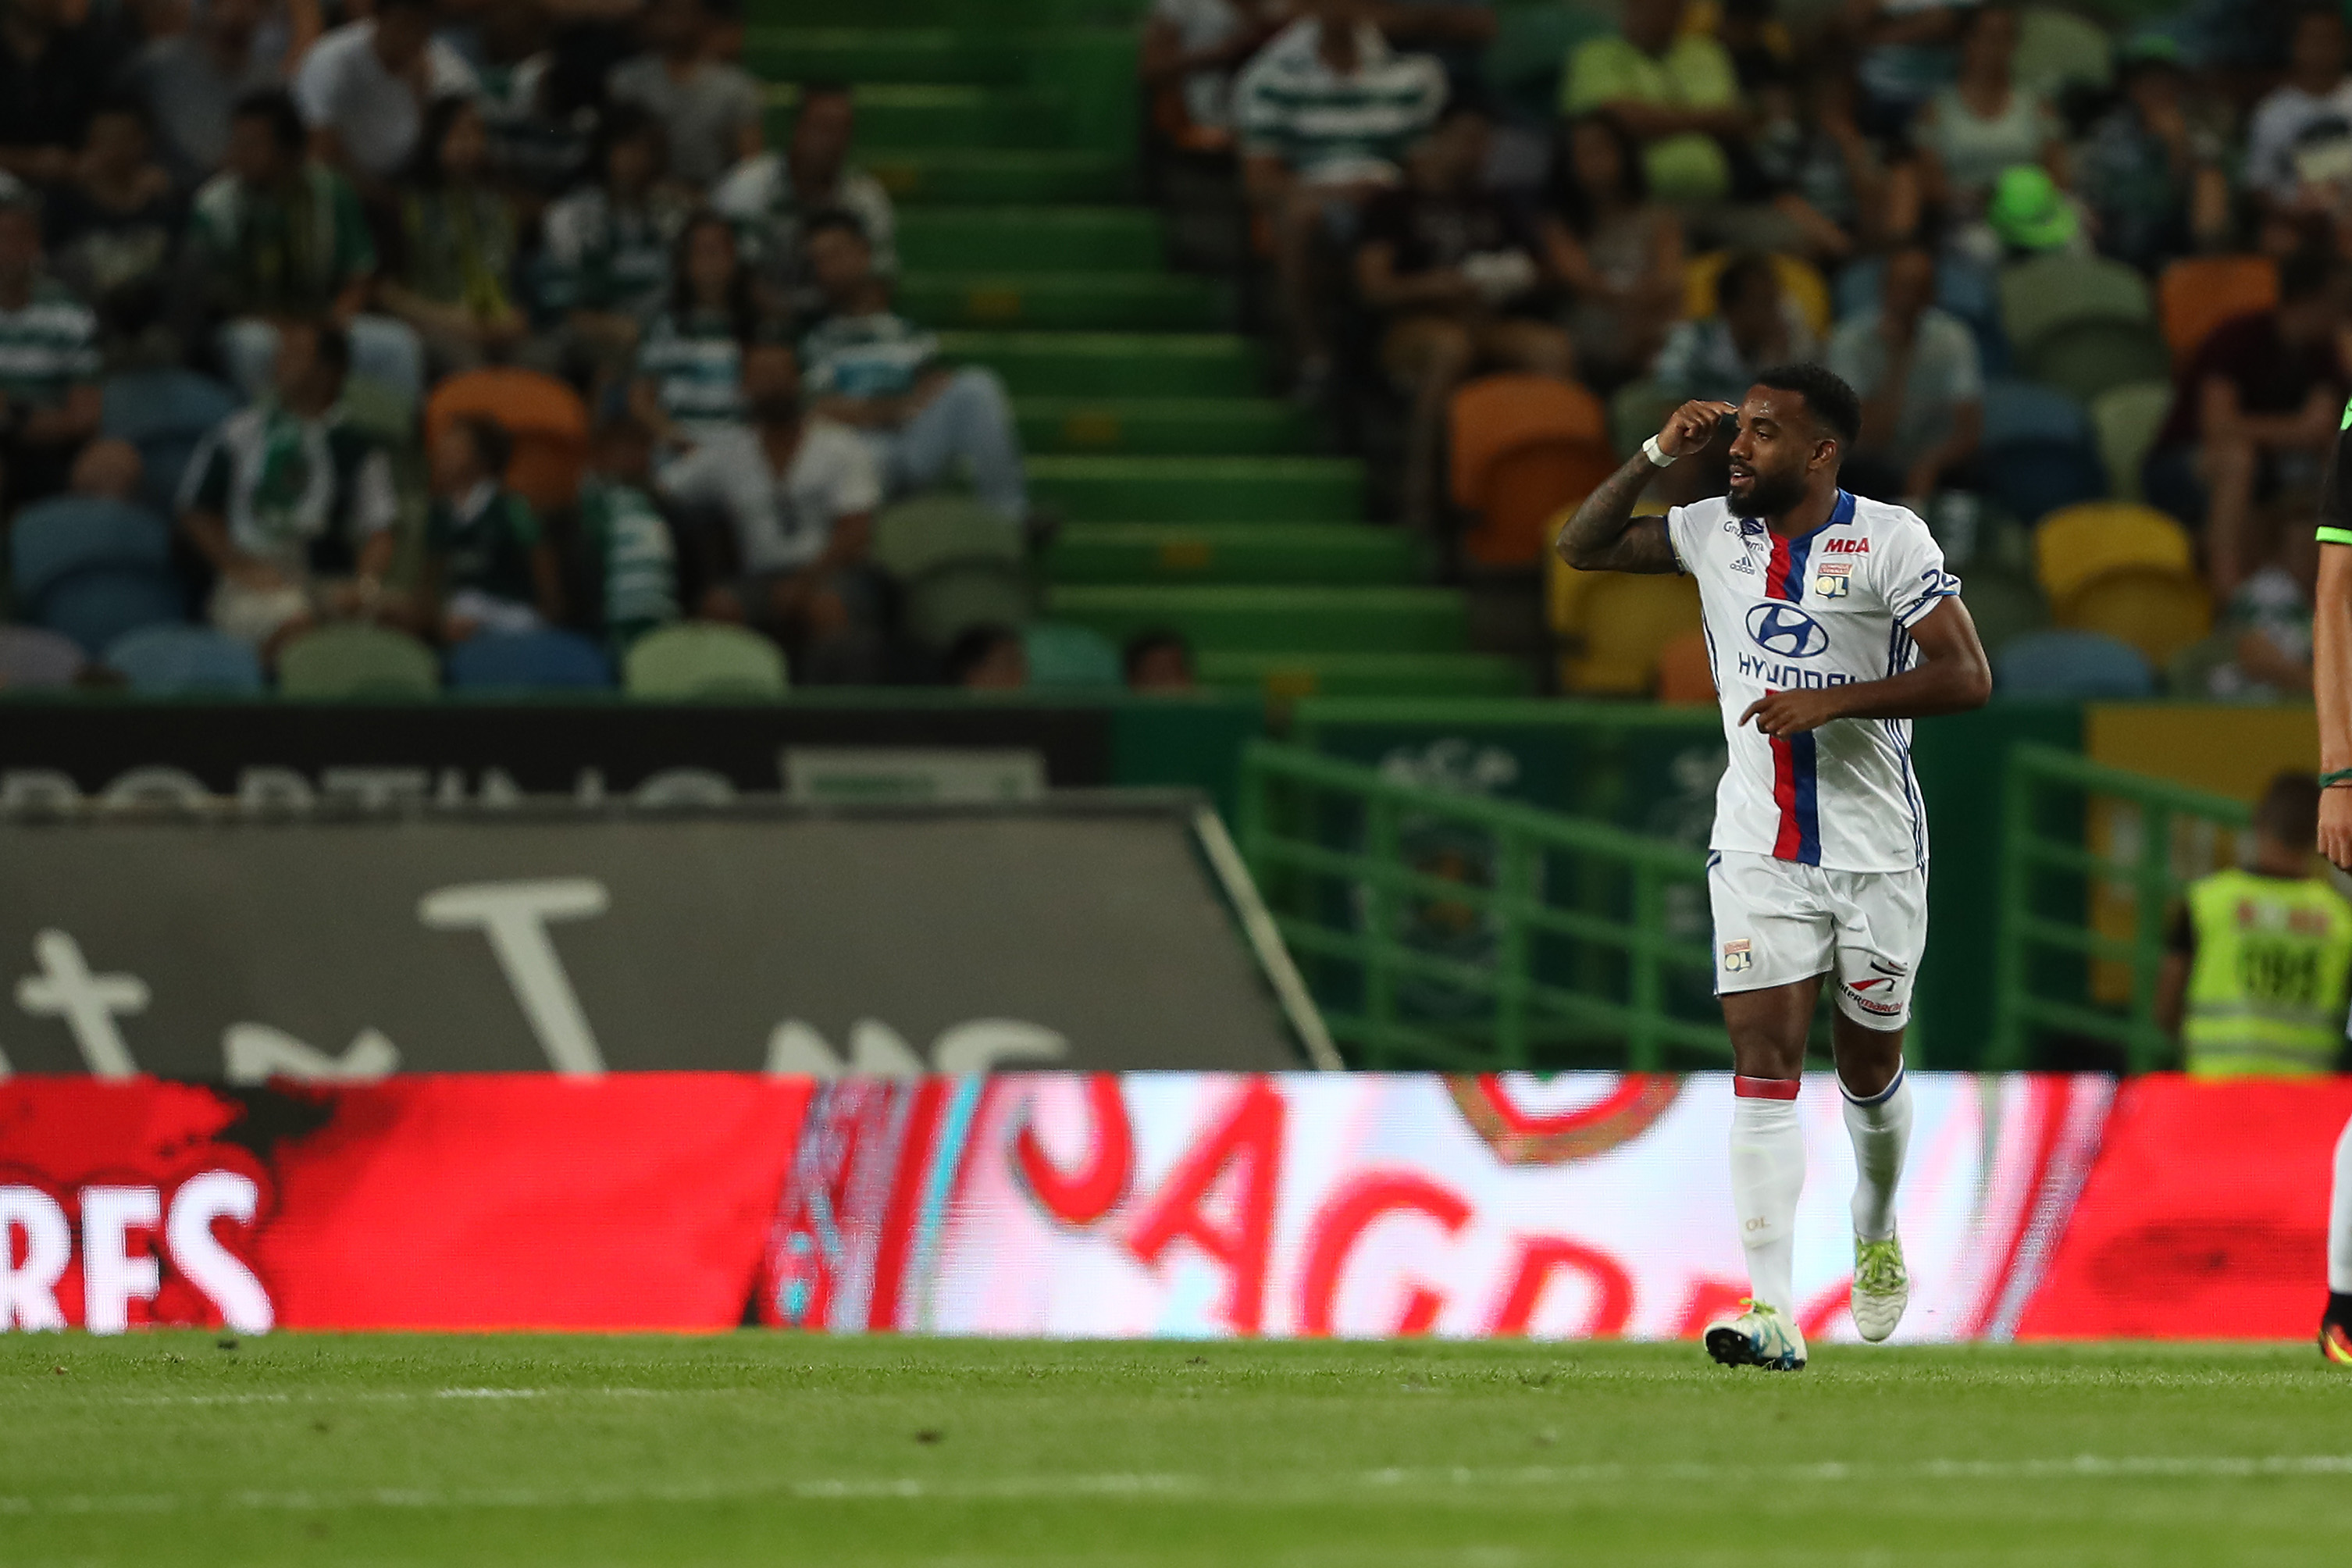 579379088-sporting-cp-v-lyon-friendly-match